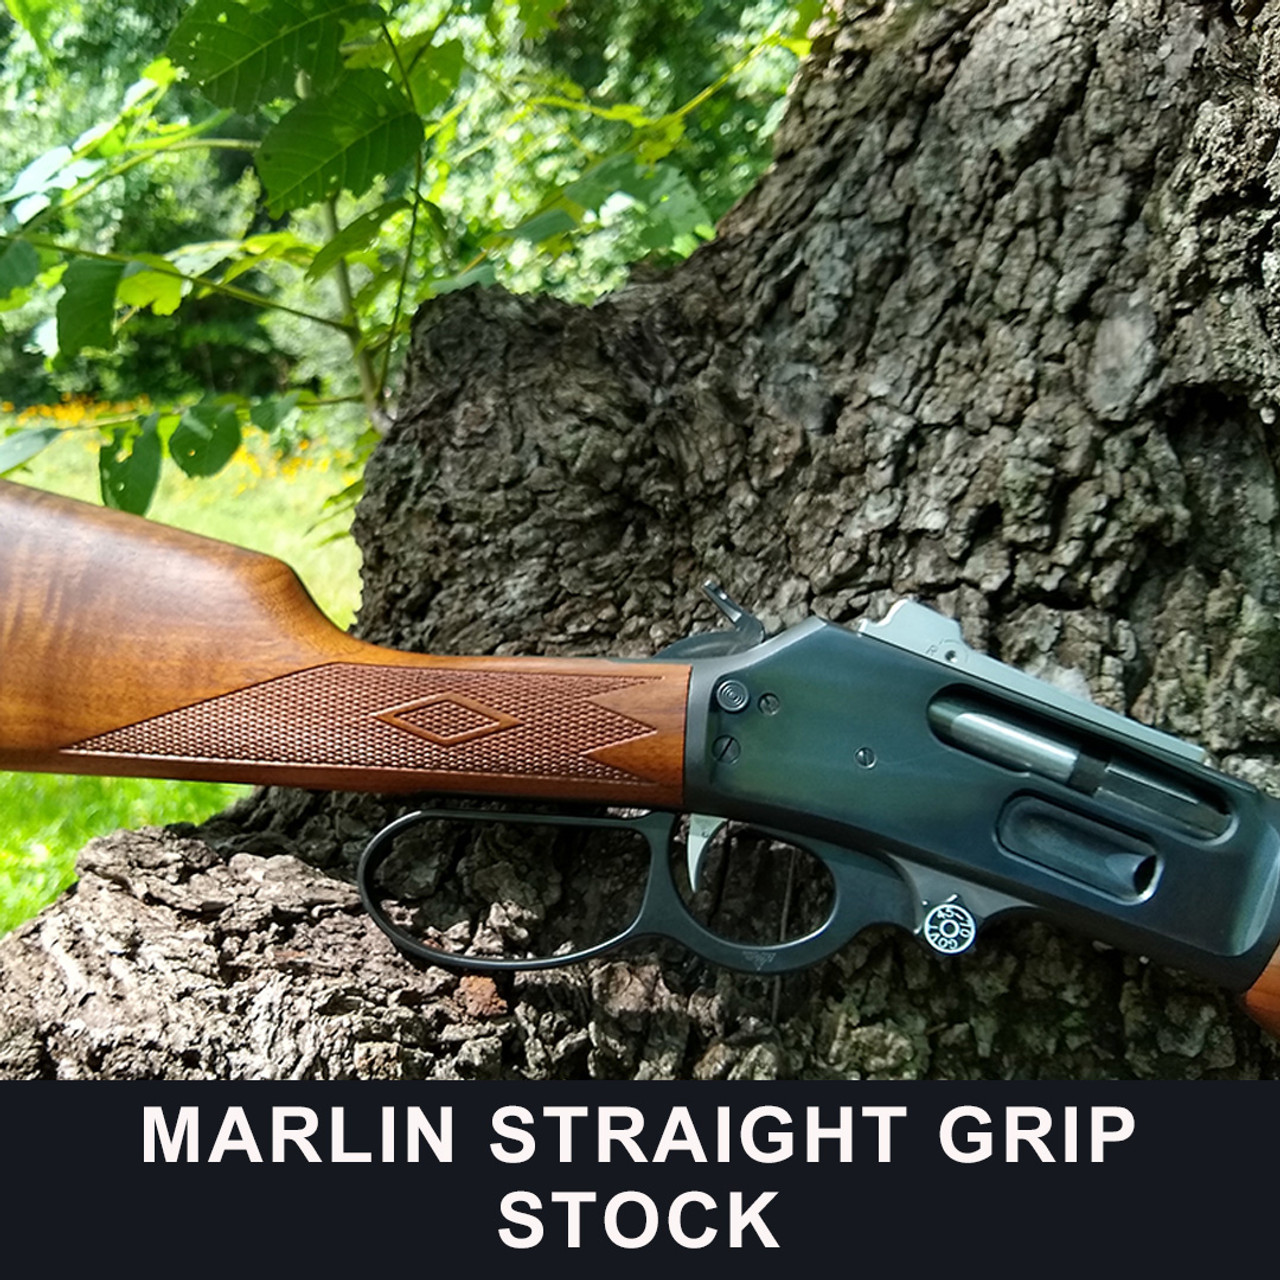 MARLIN LEVER MARLIN LARGE LOOP LEVER MARLIN 30-30 MARLIN 336 MARLIN 444 MARLIN 45-70 MARLIN 1895 MARLIN 35 REM MARLIN 336 MARLIN 1894 MARLIN 357 MARLIN 44 MAG MARLIN 45 COLT MARLIN 450M RANGTER POINT PRECISION